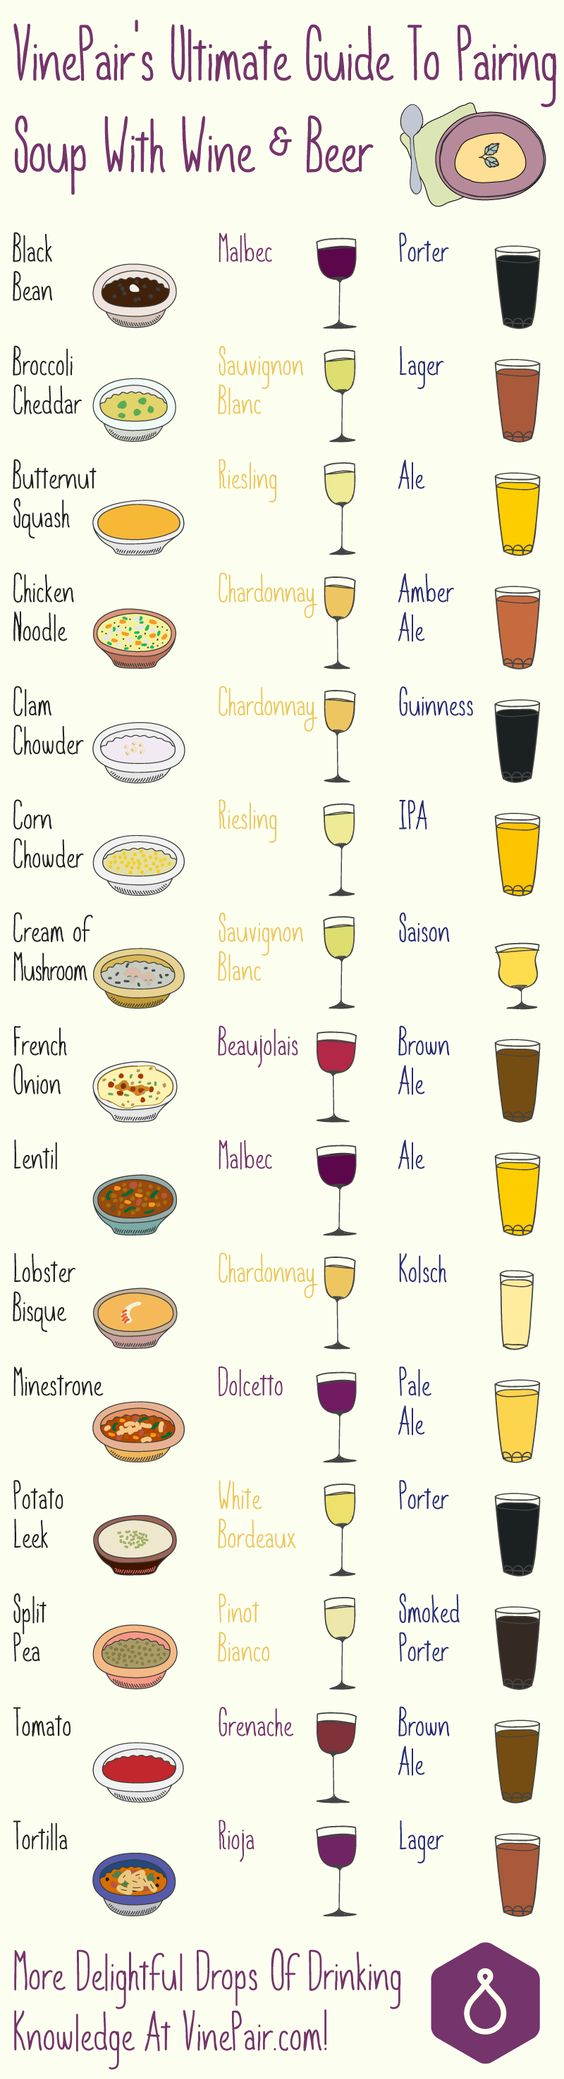 The Ultimate Guide To Pairing Soup With Wine And Beer - Infographic